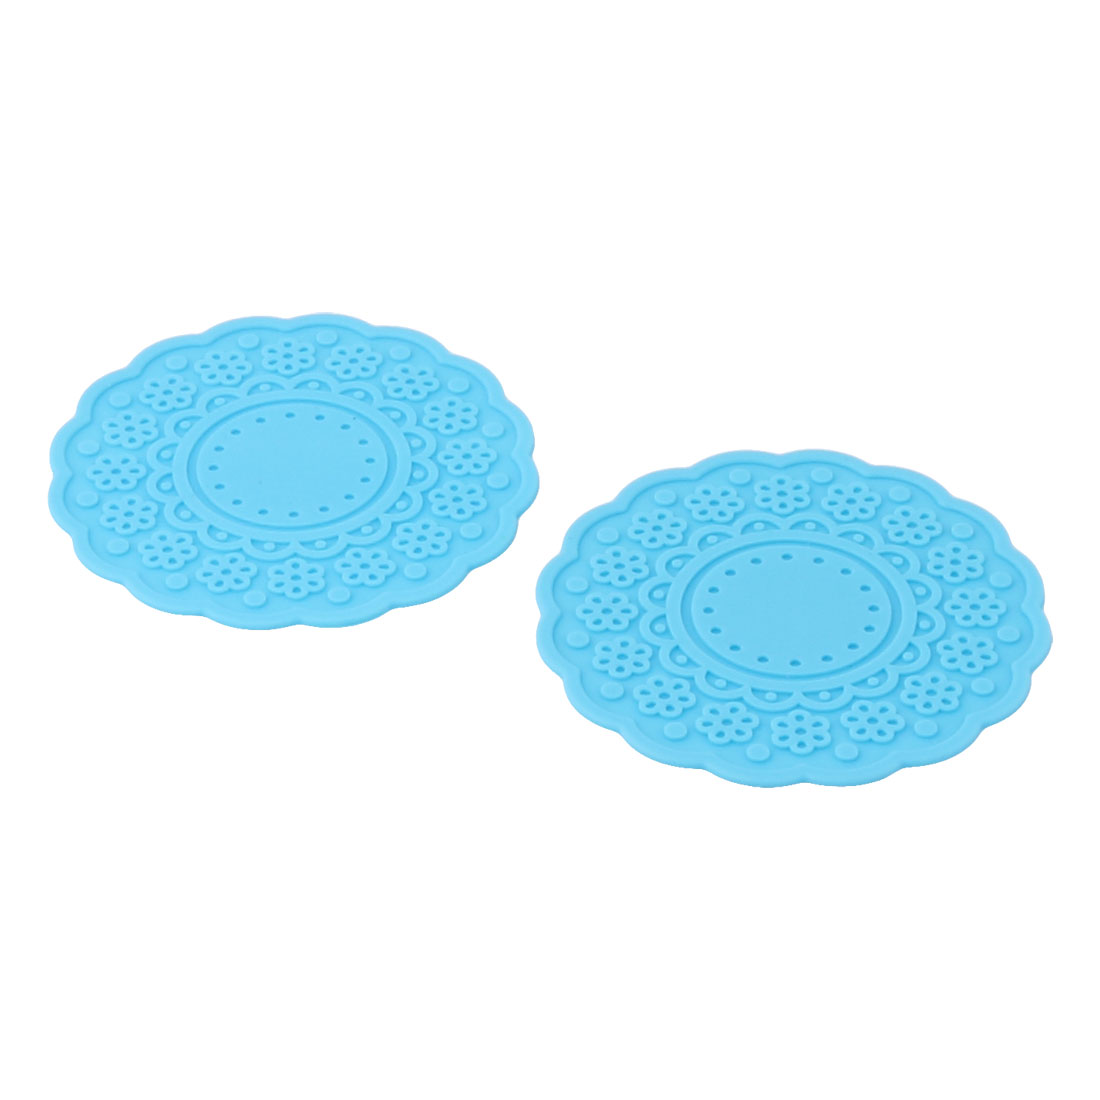 Family Flower Shaped Rubber Drinking Heat Glass Cup Coaster Mats Pad Blue 2 PCS